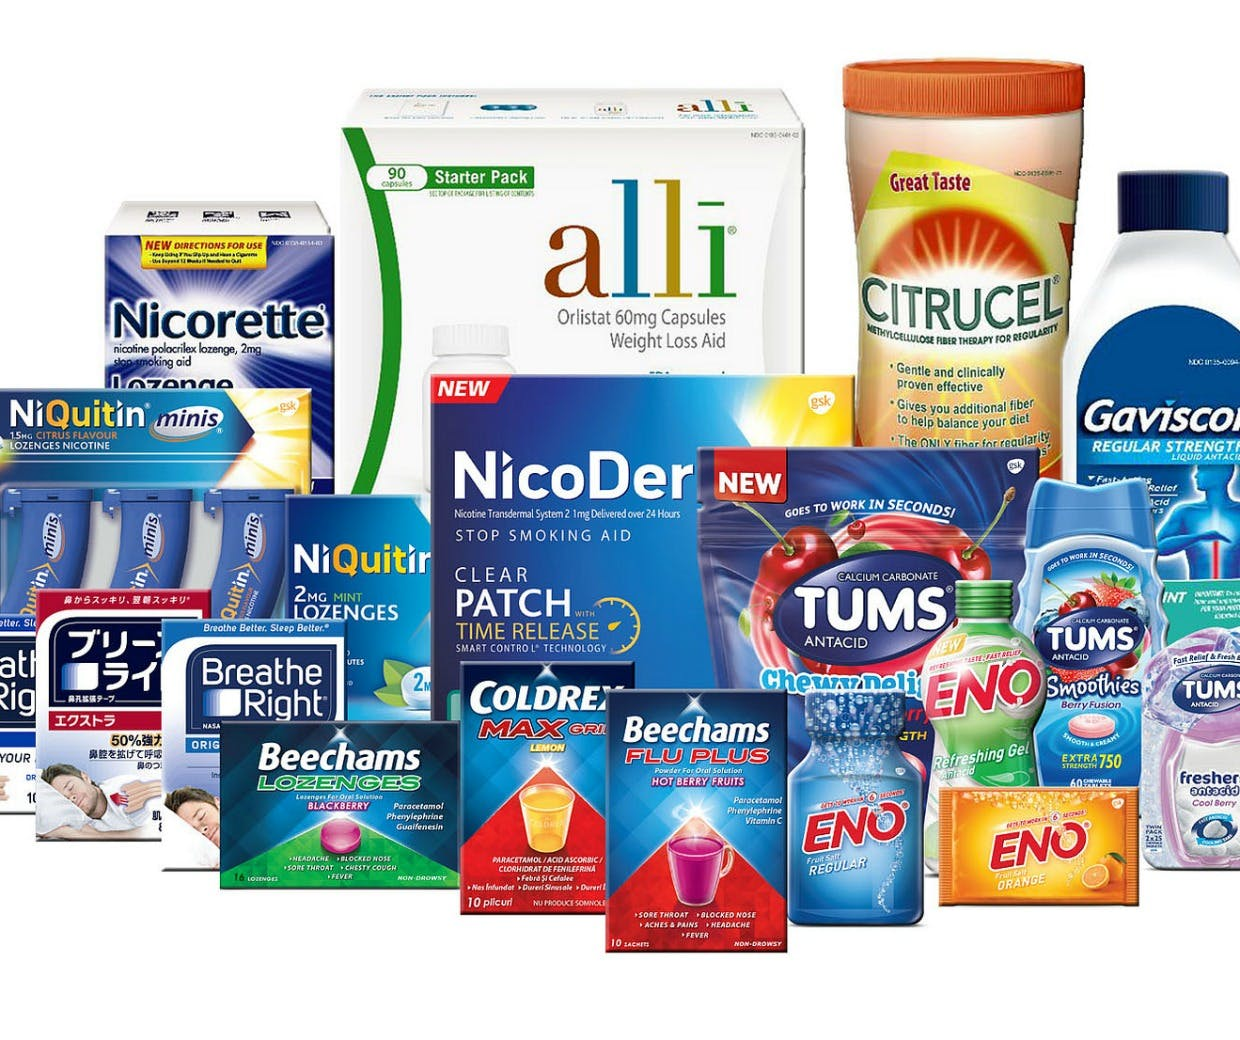 GSK healthcare brands